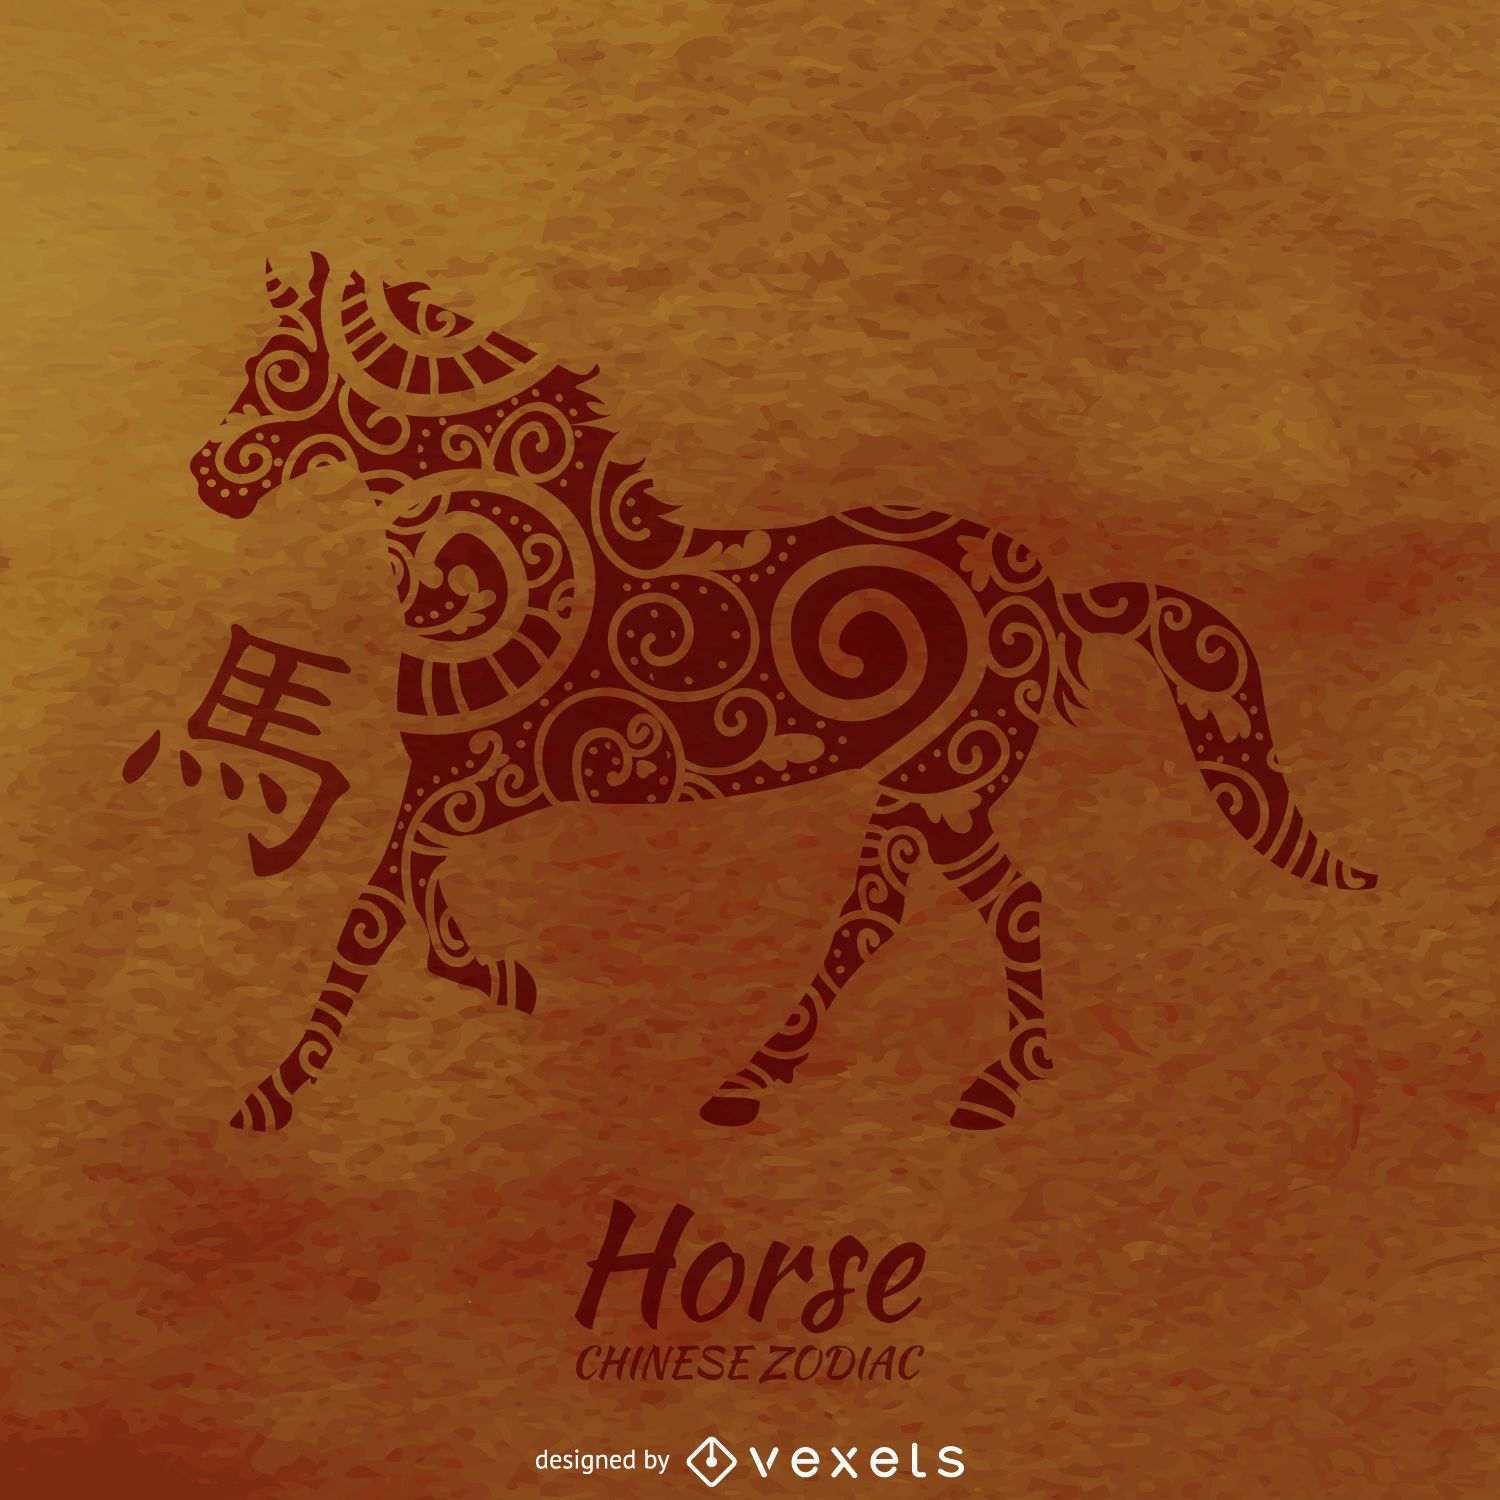 Zodiac signs wheel vector download chinese zodiac horse drawing biocorpaavc Images